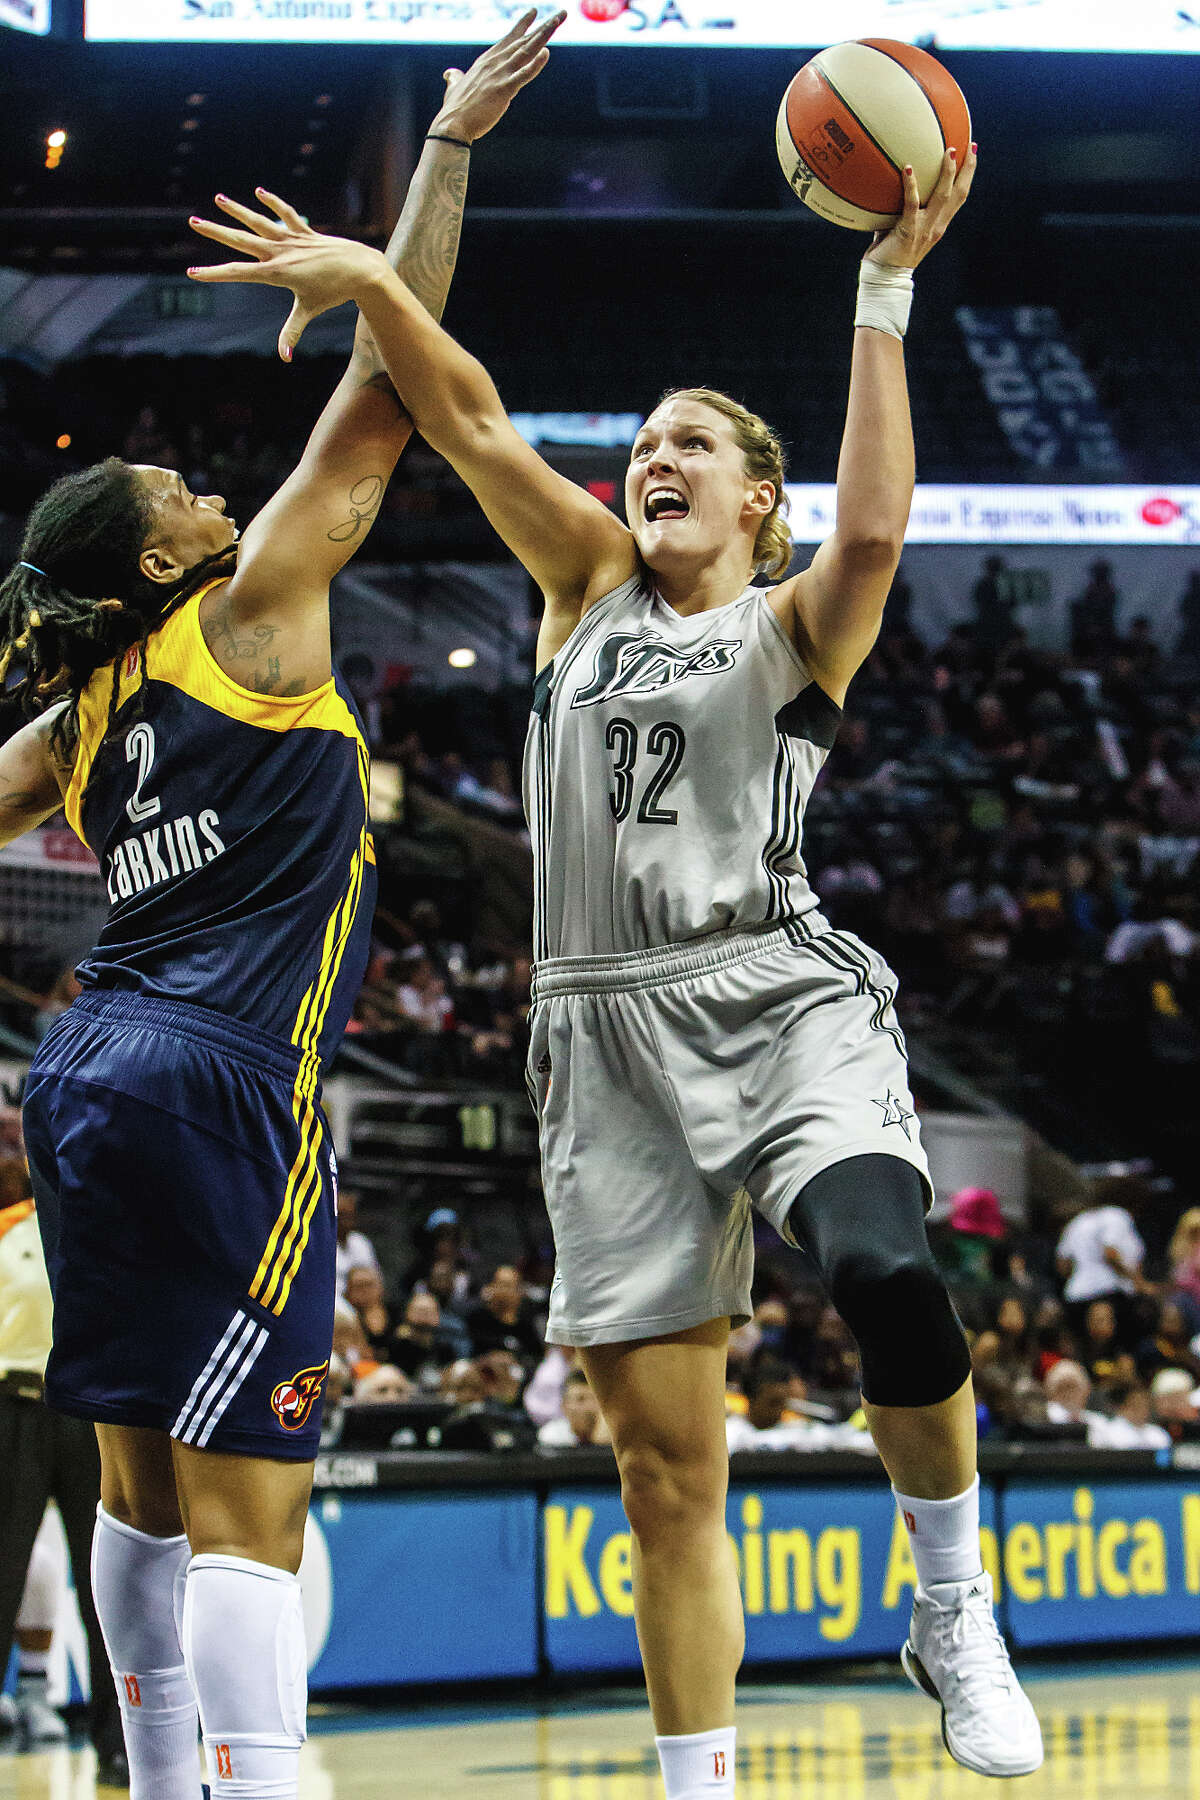 Jayne Appel (right) goes to the basket around Indiana's Erlana Larkins during the second half of the San Antonio Silver Stars 2013 season opener against the defending WNBA champions at the AT&T Center on Friday, May 24, 2013. The Fever won the game 79-64. MARVIN PFEIFFER/ mpfeiffer@express-news.net